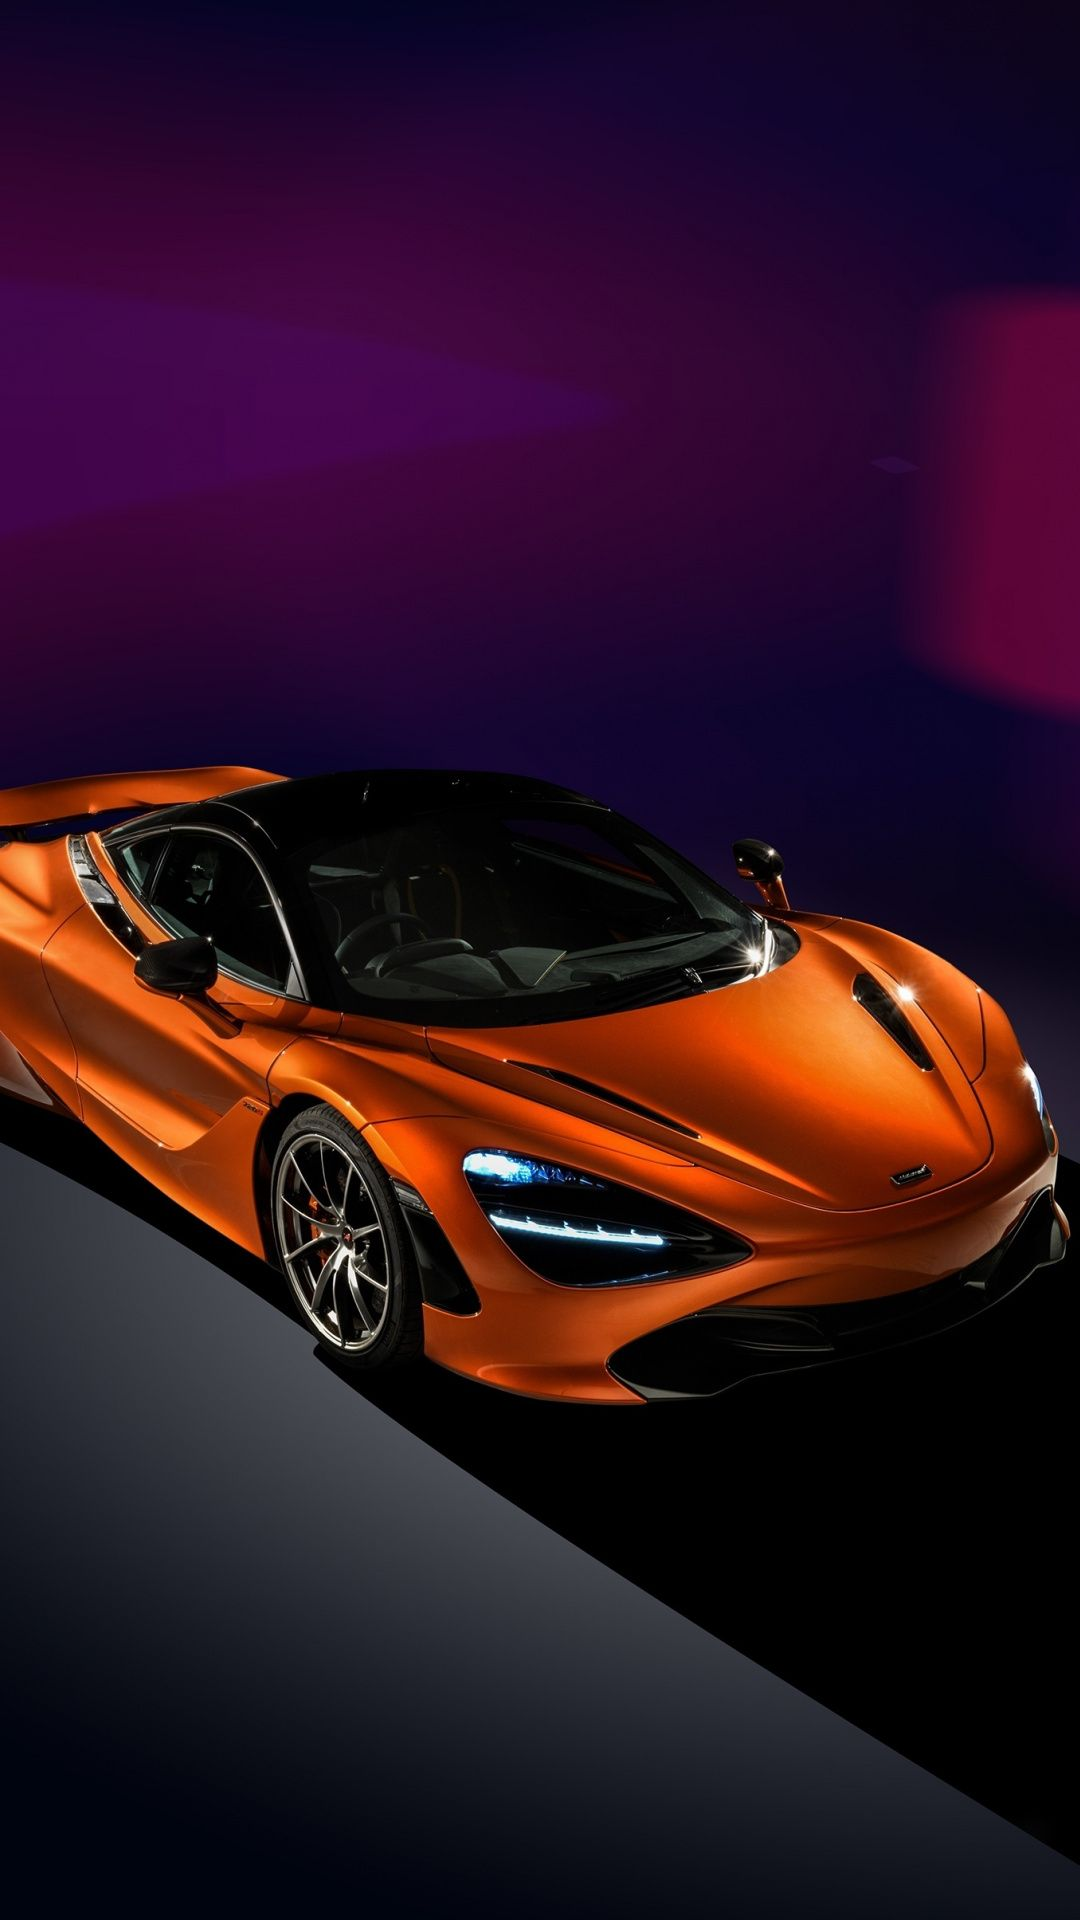 2018 Mclaren 720s Sports Car Orange 1080x1920 Wallpaper Sports Car Car Iphone Wallpaper Sports Car Wallpaper